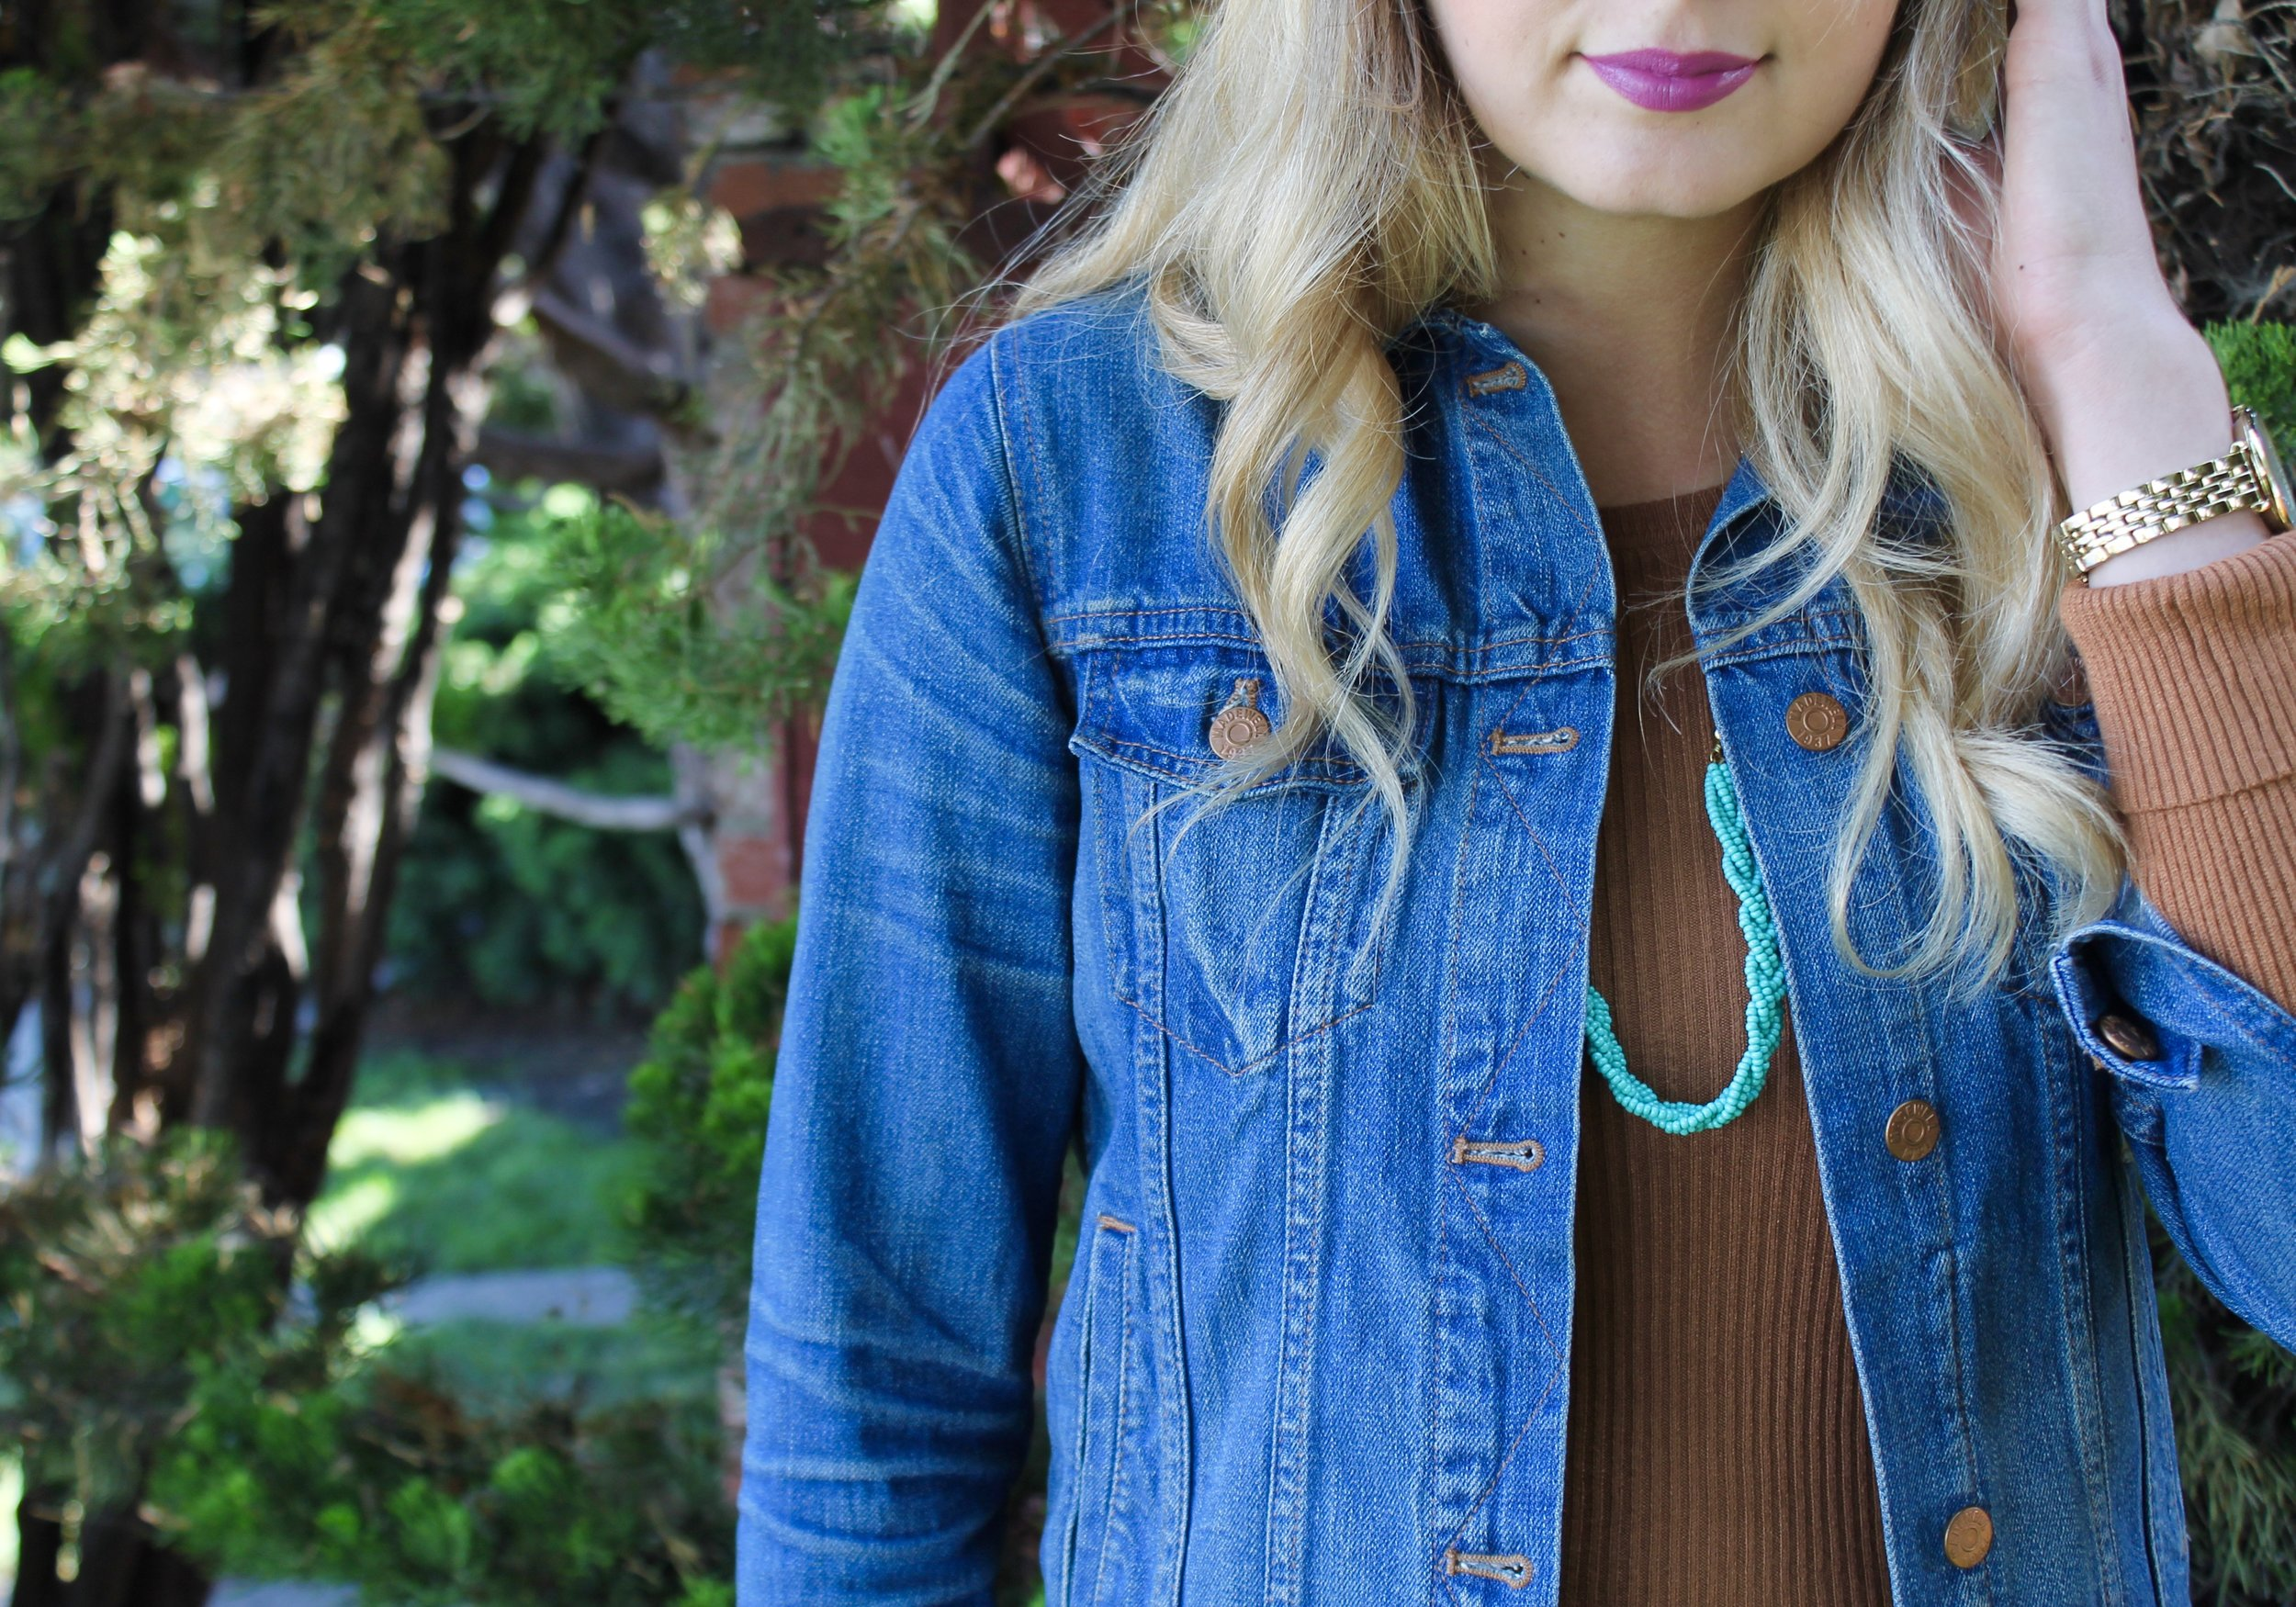 Burnt Orange Madewell Denim Jacket Fall Fashion Trends| Kaci Nicole